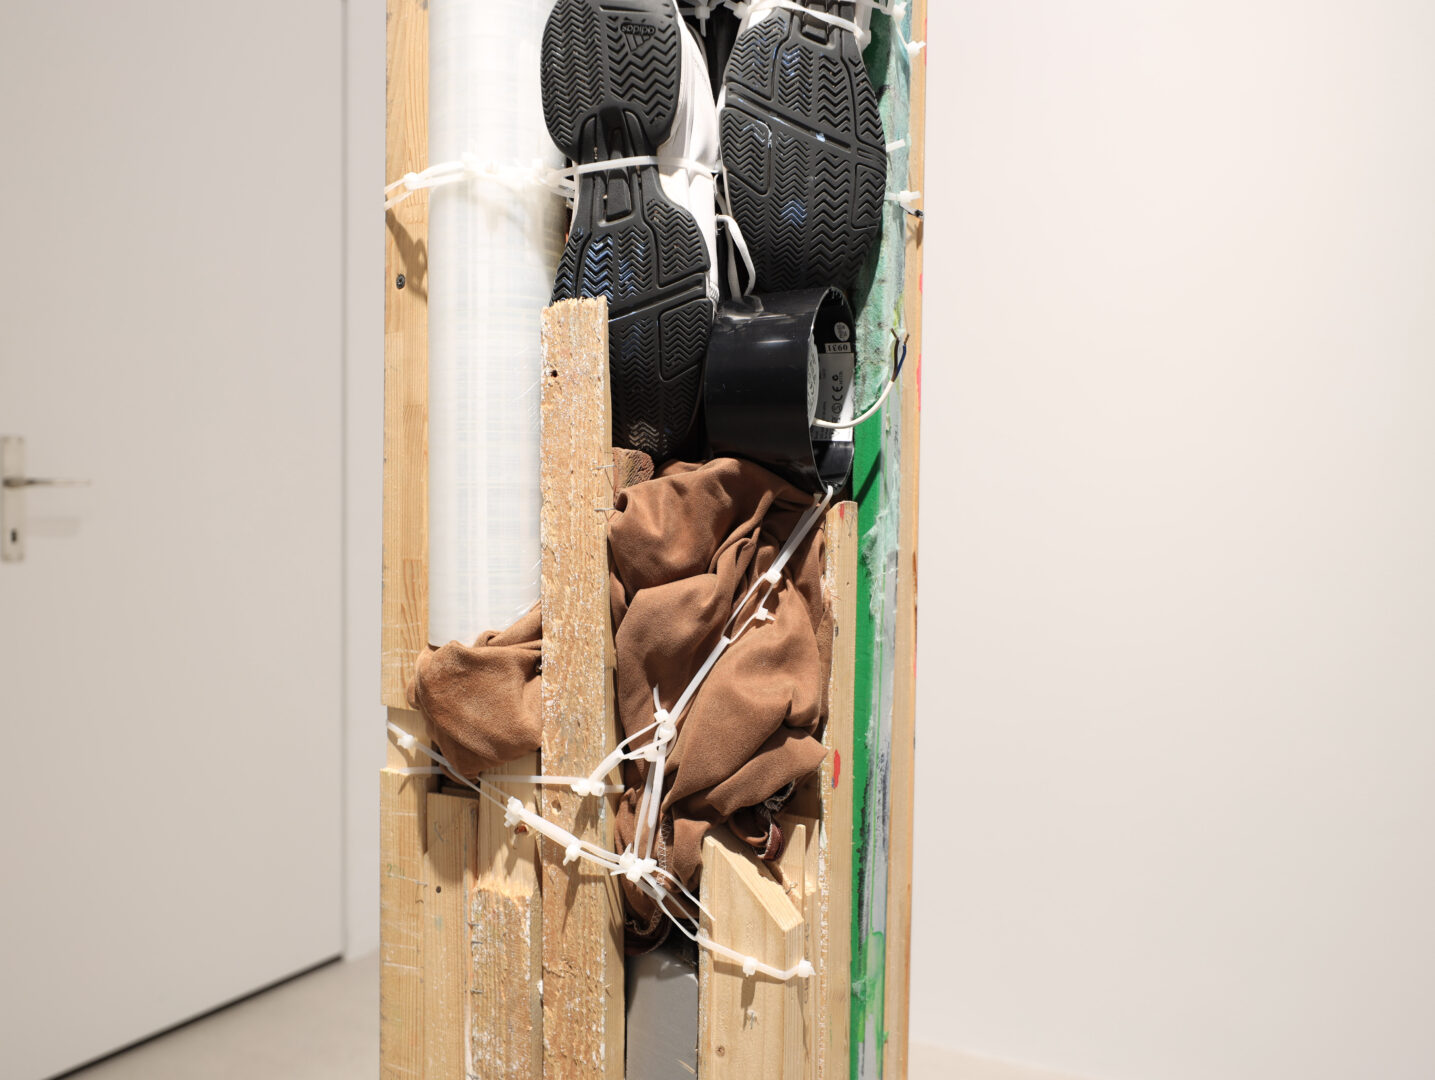 Exhibition View Umut Yasat Soloshow «5/1; view on Der Stapel 32, 2019» at Windhager von Kaenel, Zurich, 2020 / Photo: Fabian Windhager / Courtesy: the artist and Windhager von Kaenel